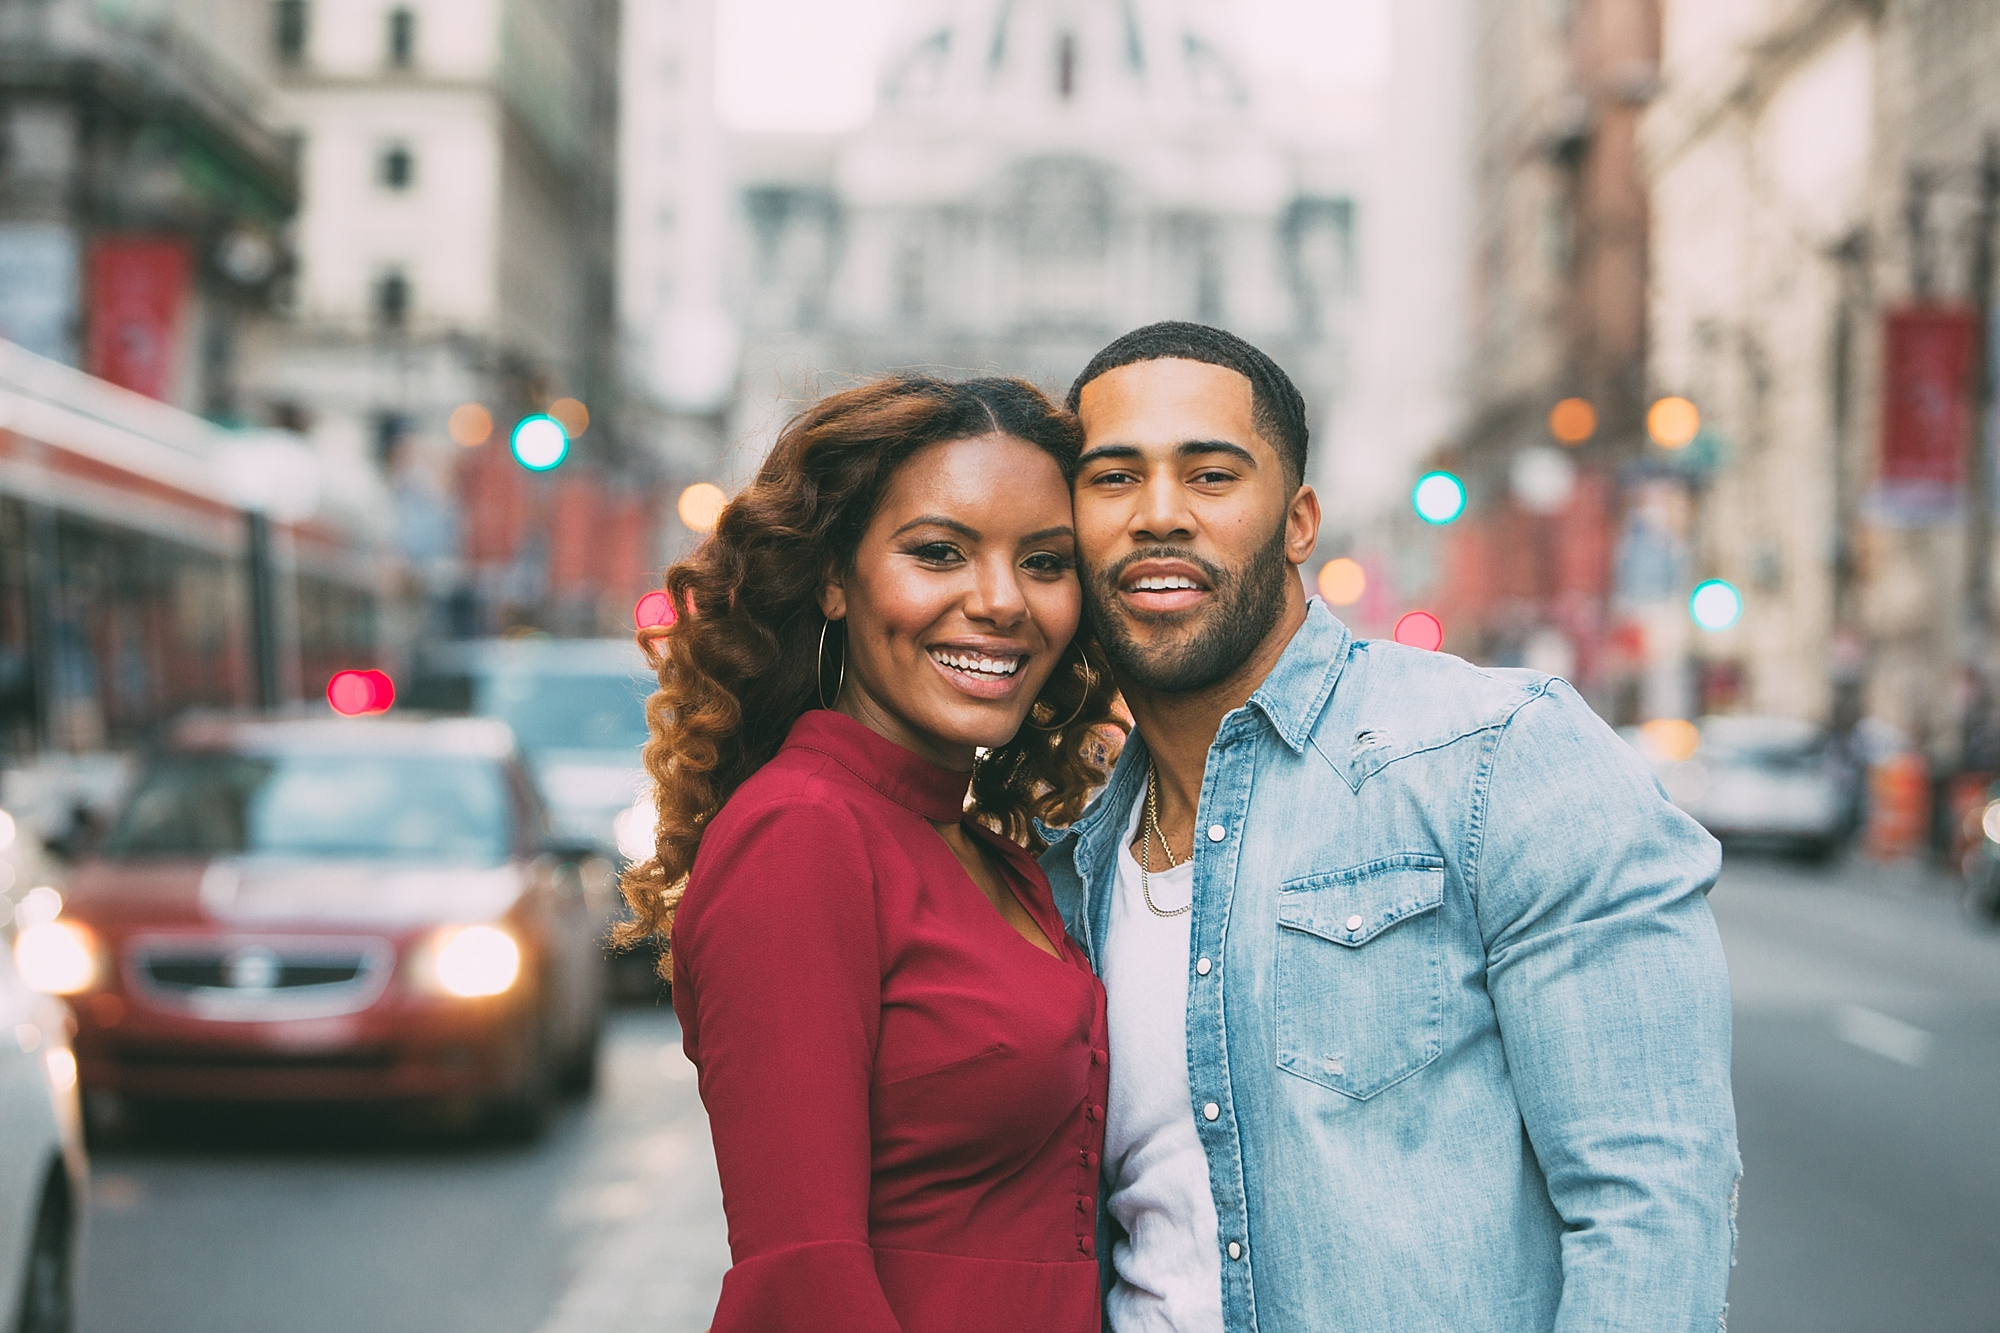 Joe_Mac_Creative_Wedding_Engagements_Photography_Philadelphia_Broad_Street_Proposal_0013.jpg